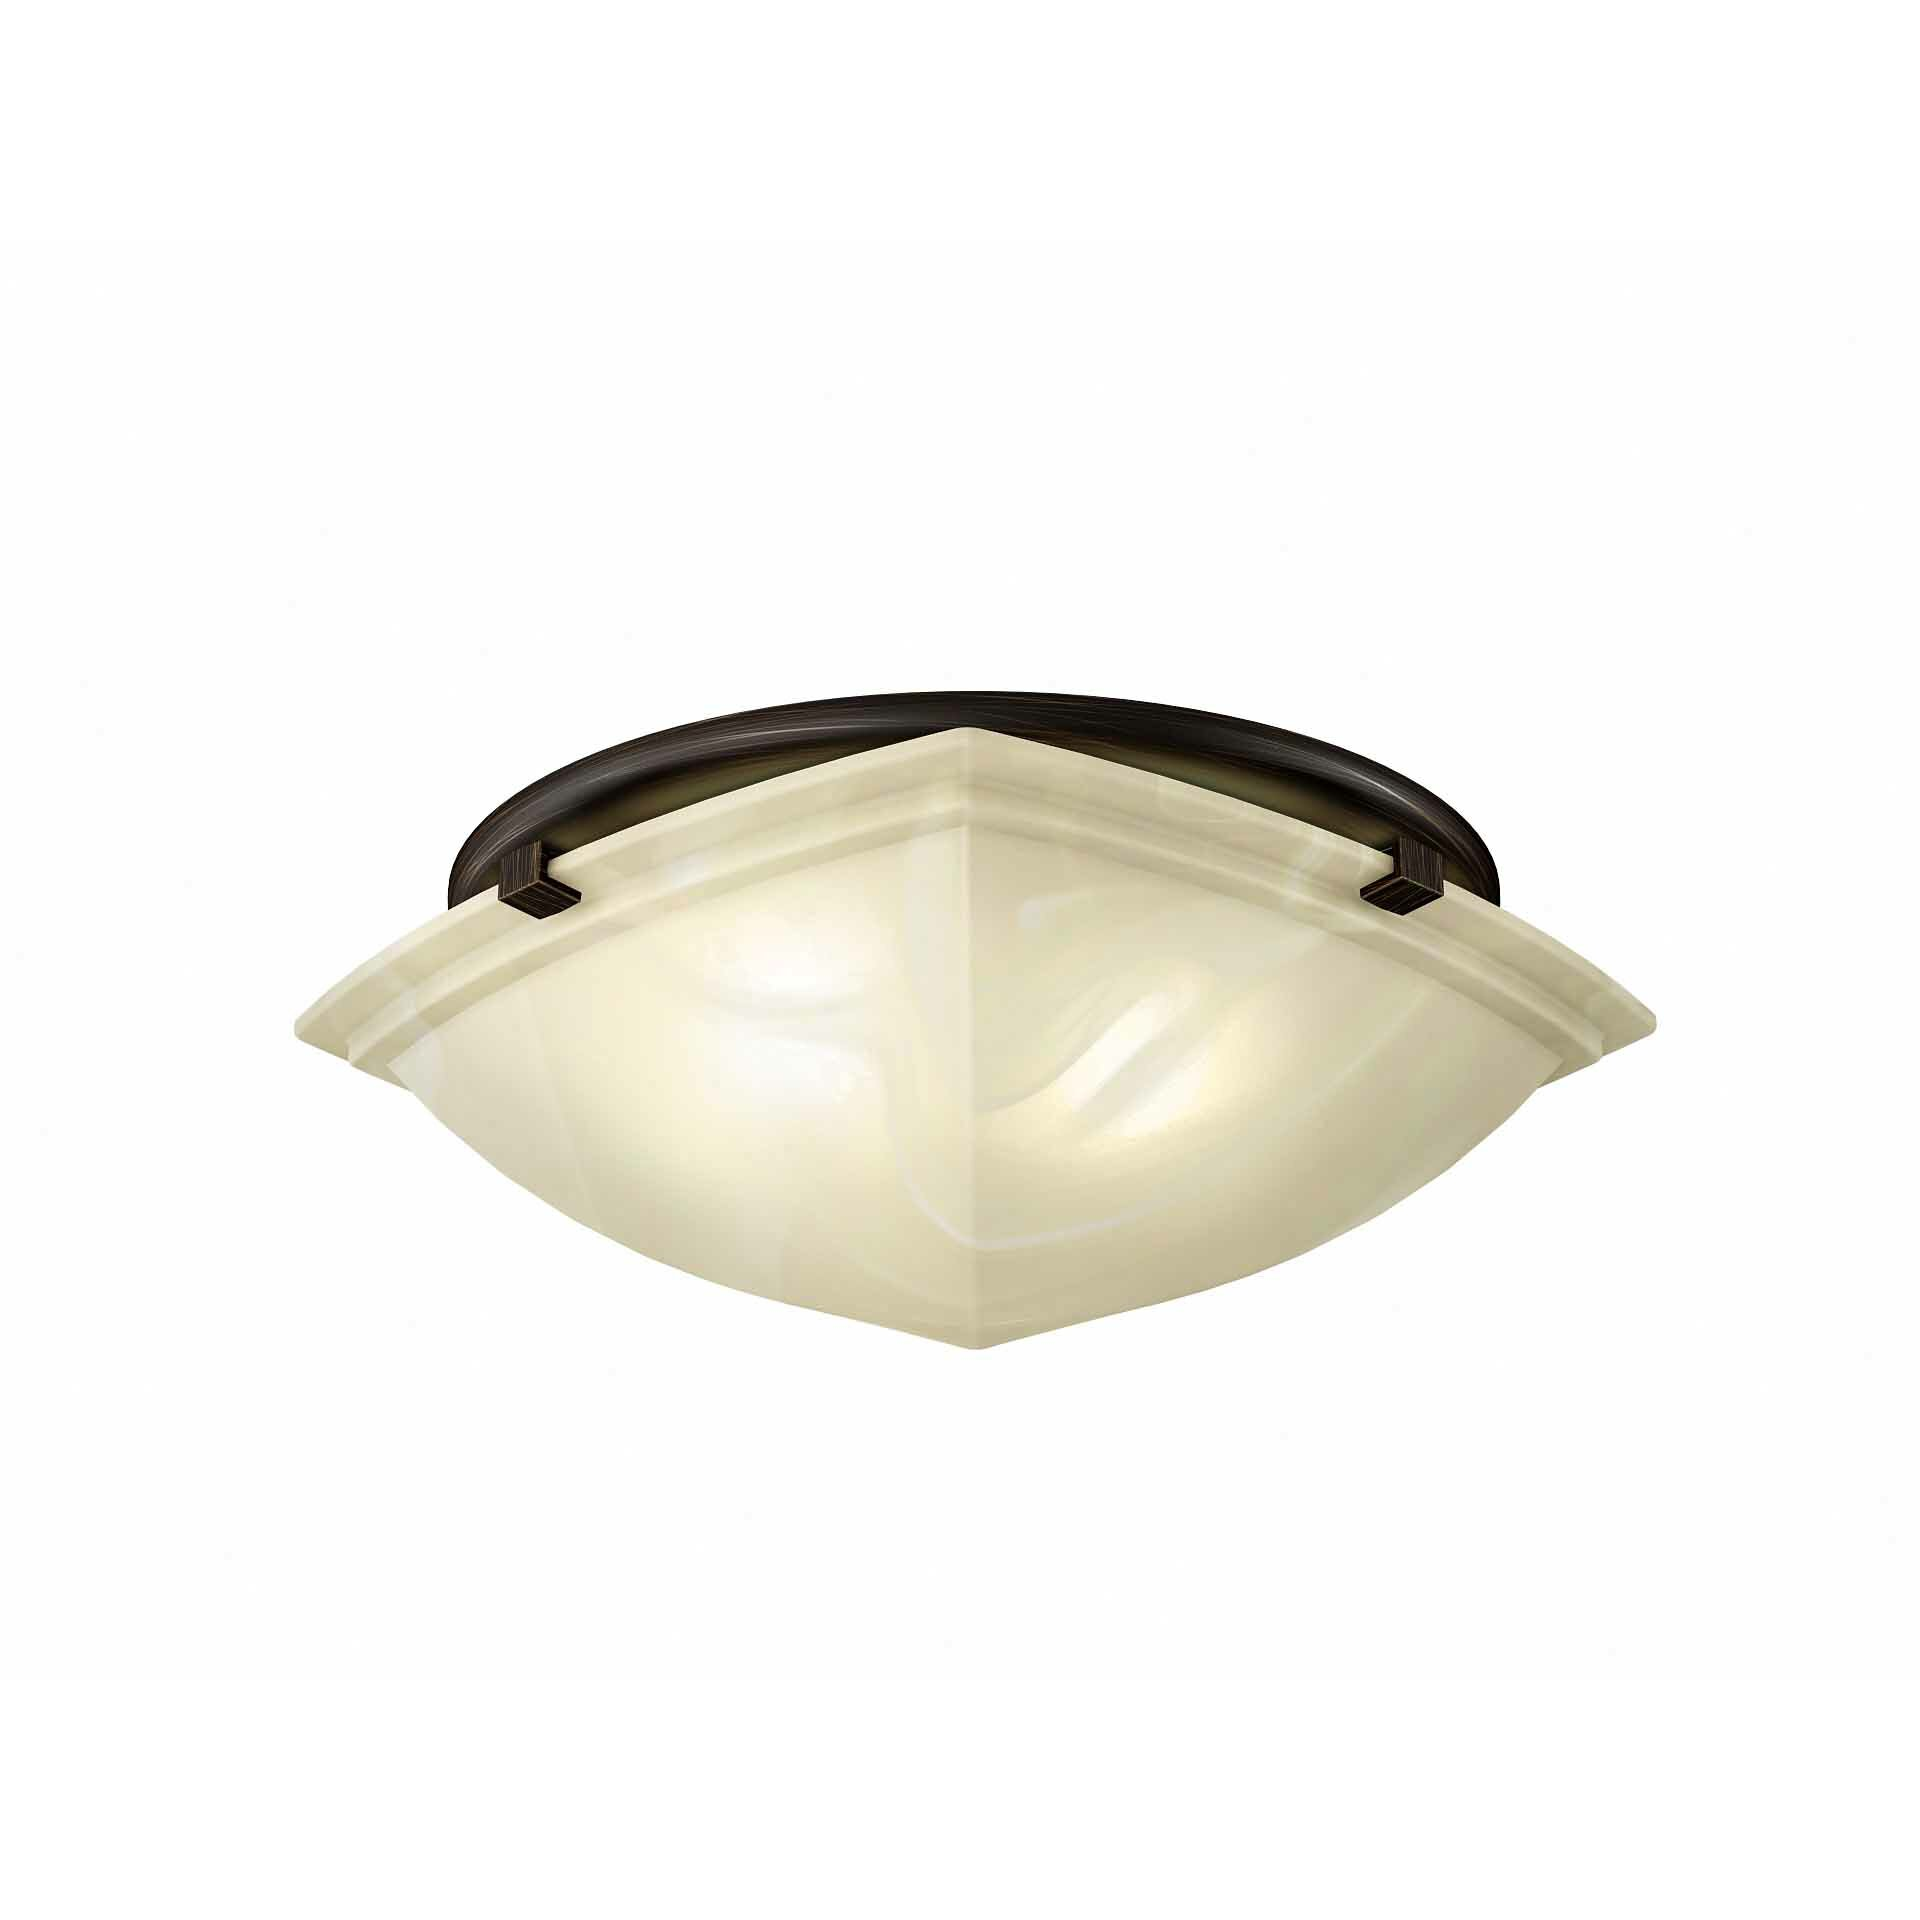 broan qtxe110flt broan 80 cfm bathroom fan light broan 80 cfm bathroom fan light reviews